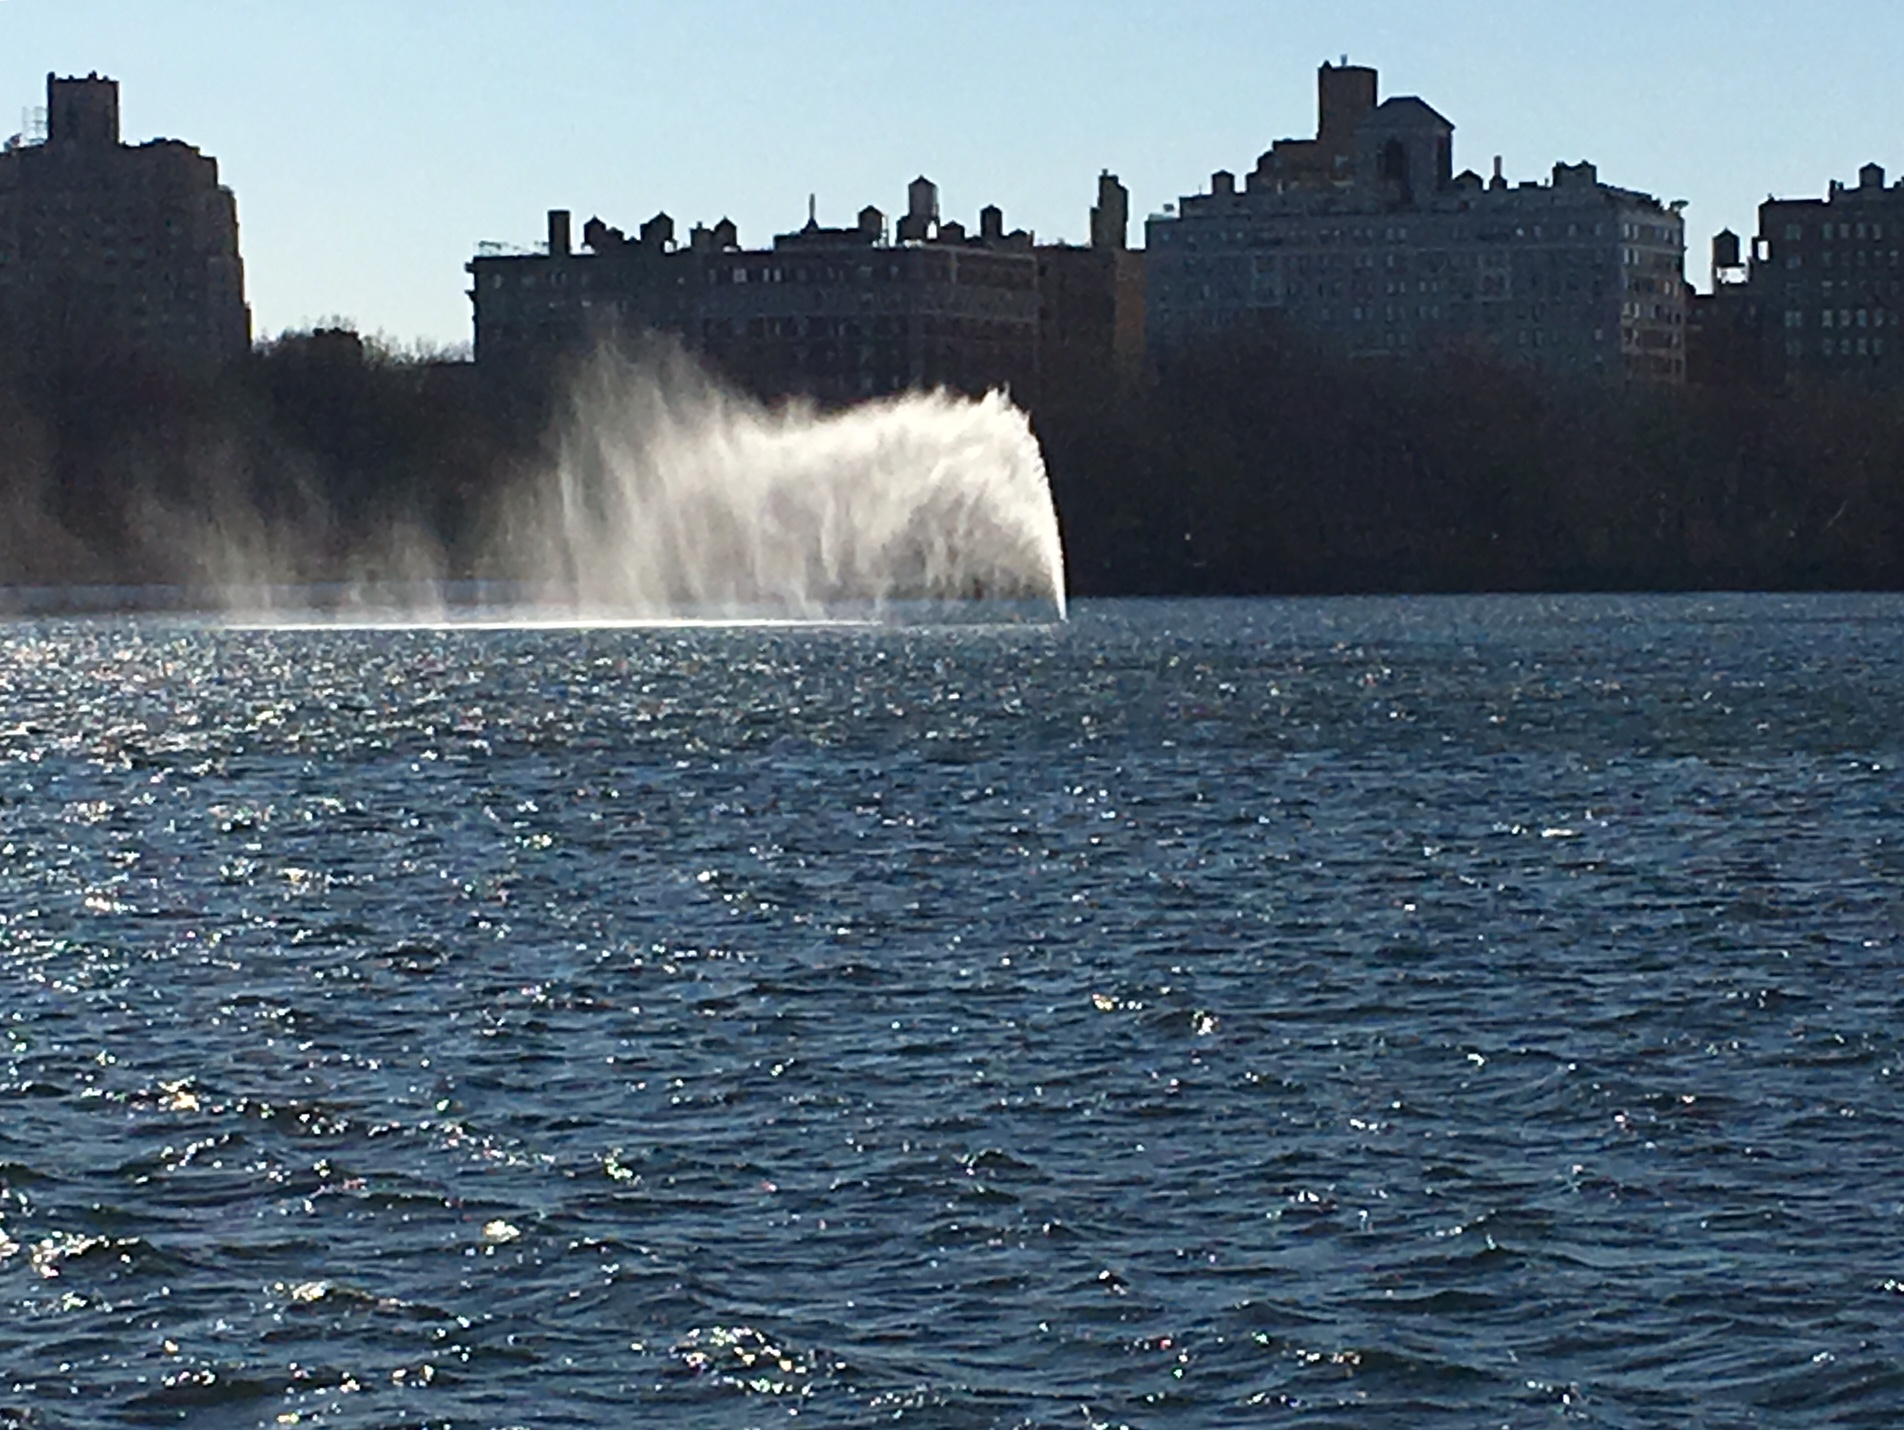 Dispatches From The Park The Wind Played With The Water Coming From The Fountain In The